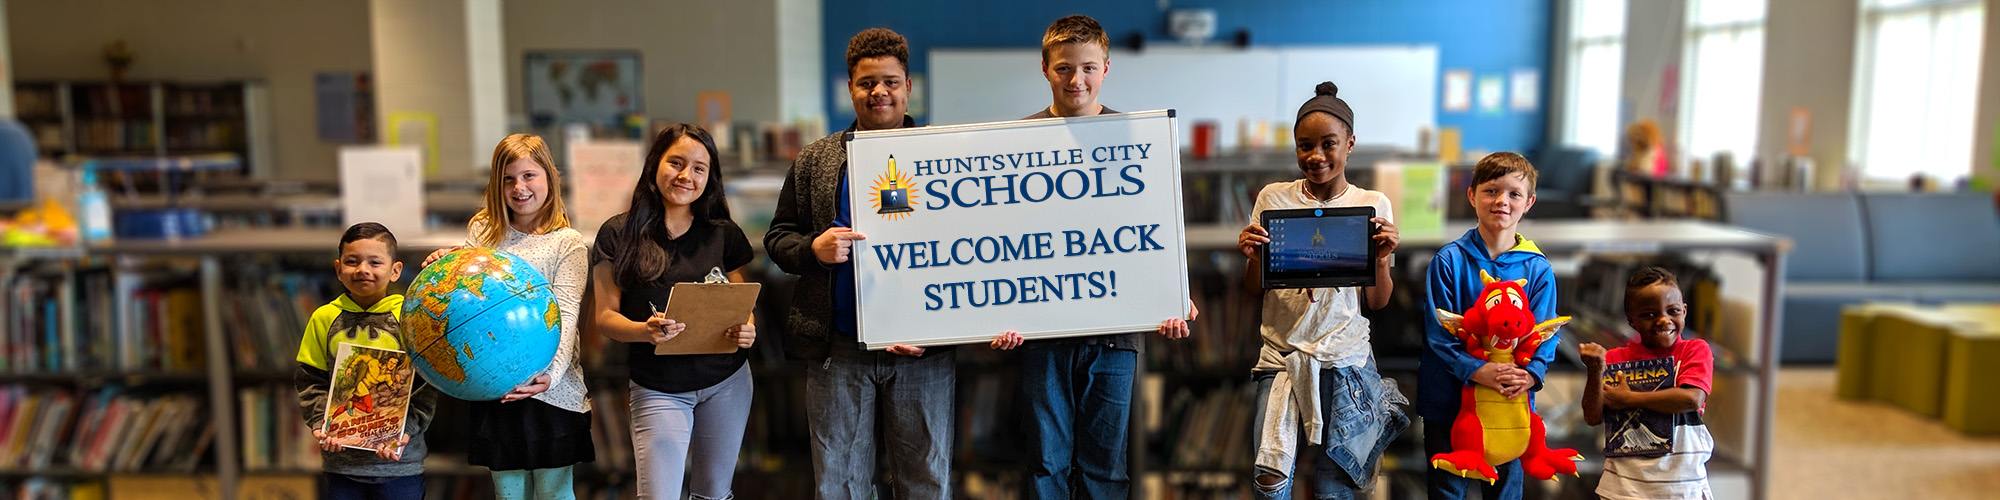 """Students in a library holding various objects and a sign that reads """"Welcome Back Students!"""""""